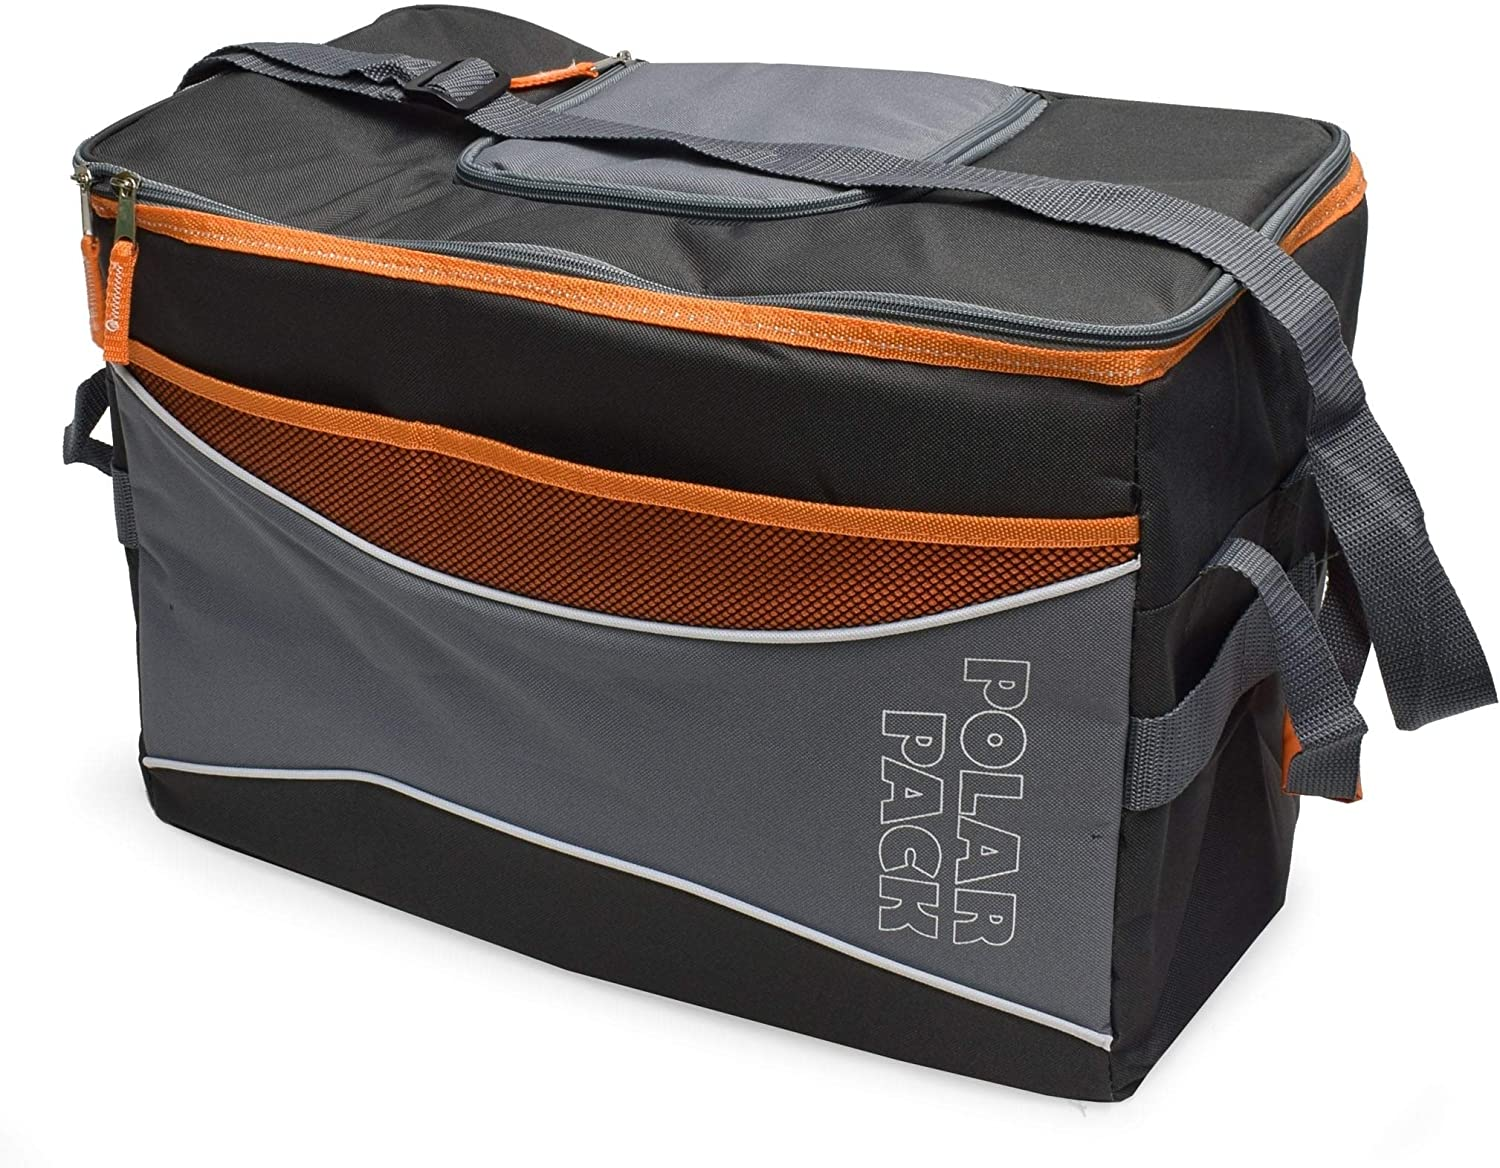 Polar Pack Large 48 Can Collapsible Cooler Bag Soft Portable Insulated Picnic Outdoor Travel Camping Hiking School Concerts Black Grey Orange Polyester Pop-up